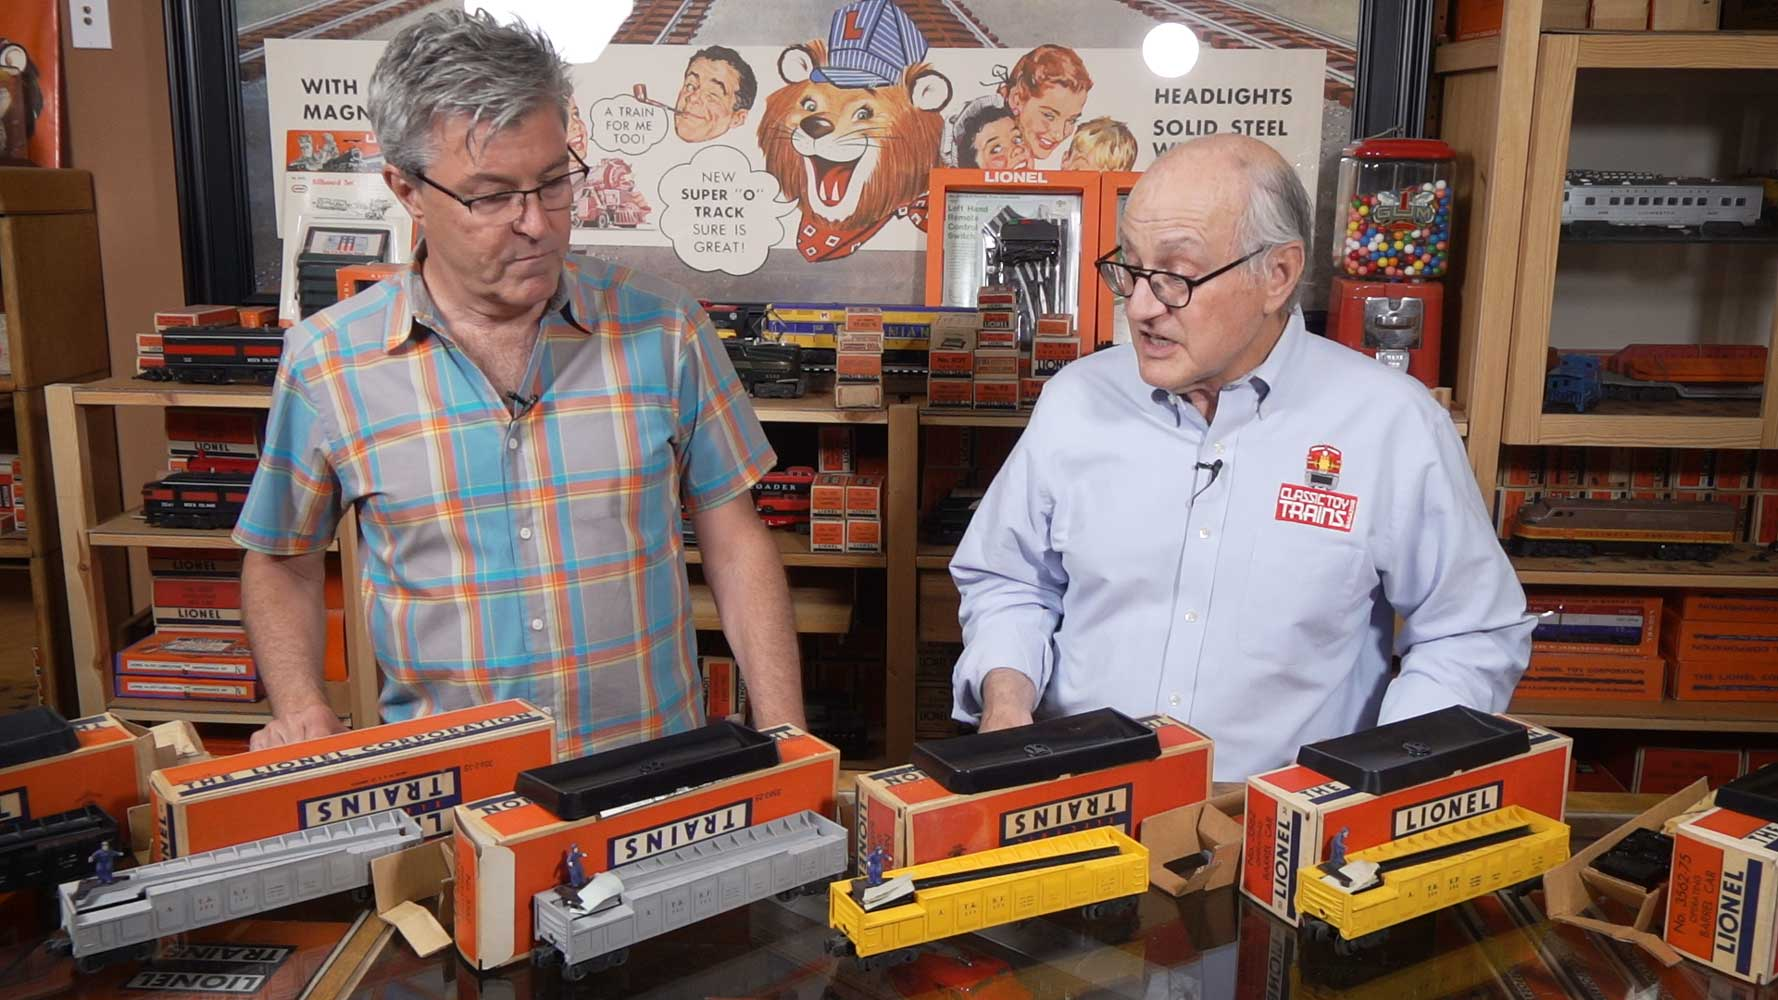 John Truckenbrod and Roger Carp display a collection of Lionel barrel cars.